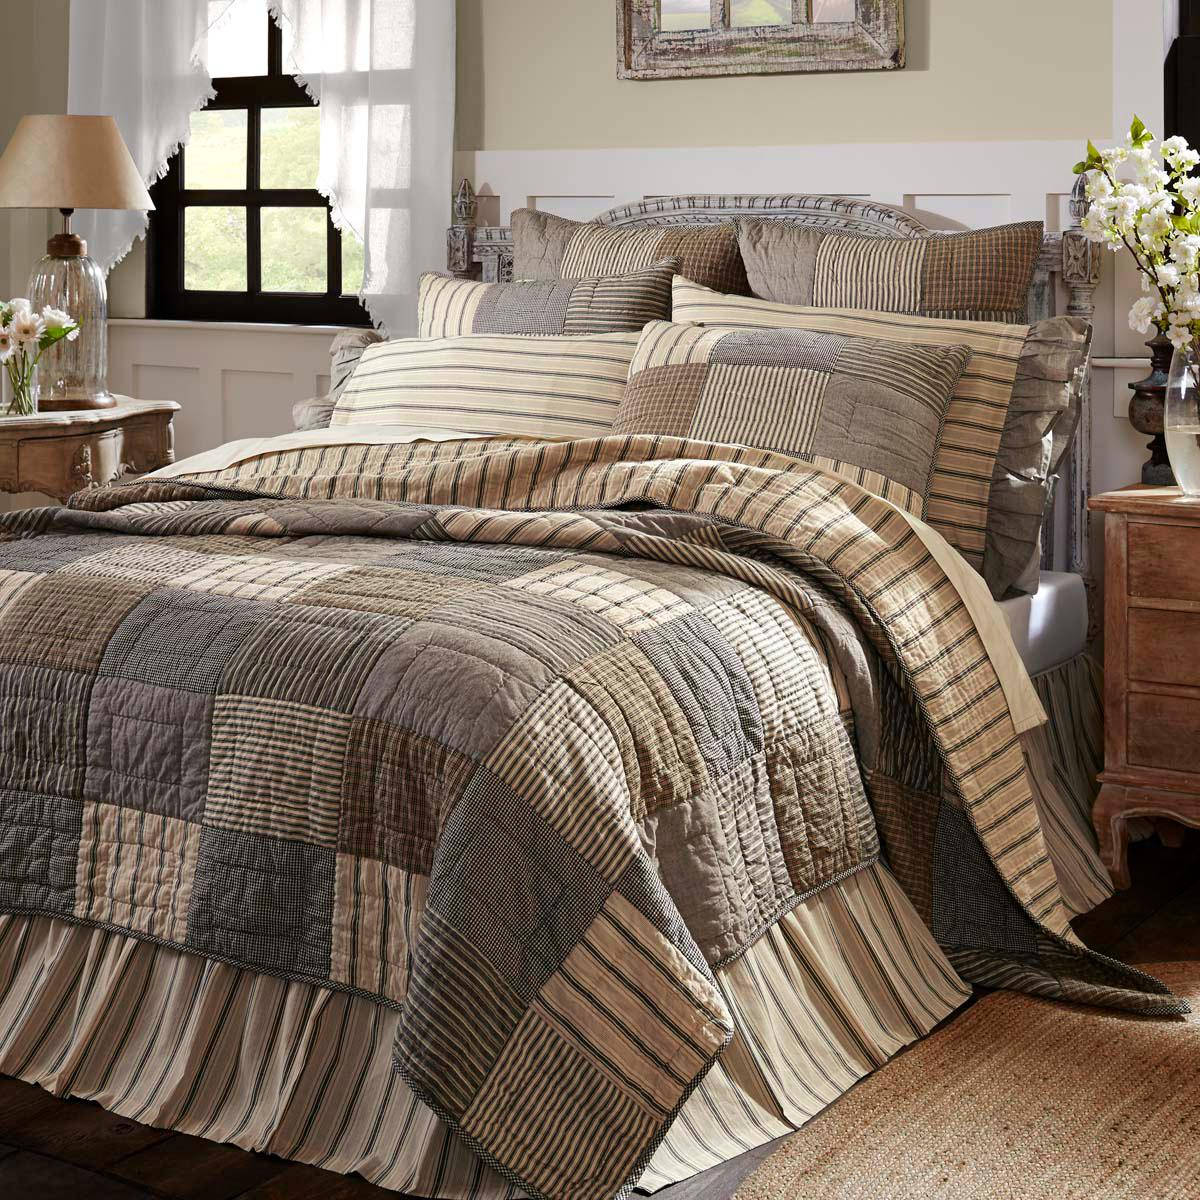 SAWYER QUILT -choose accessories-farmhouse bedding VHC